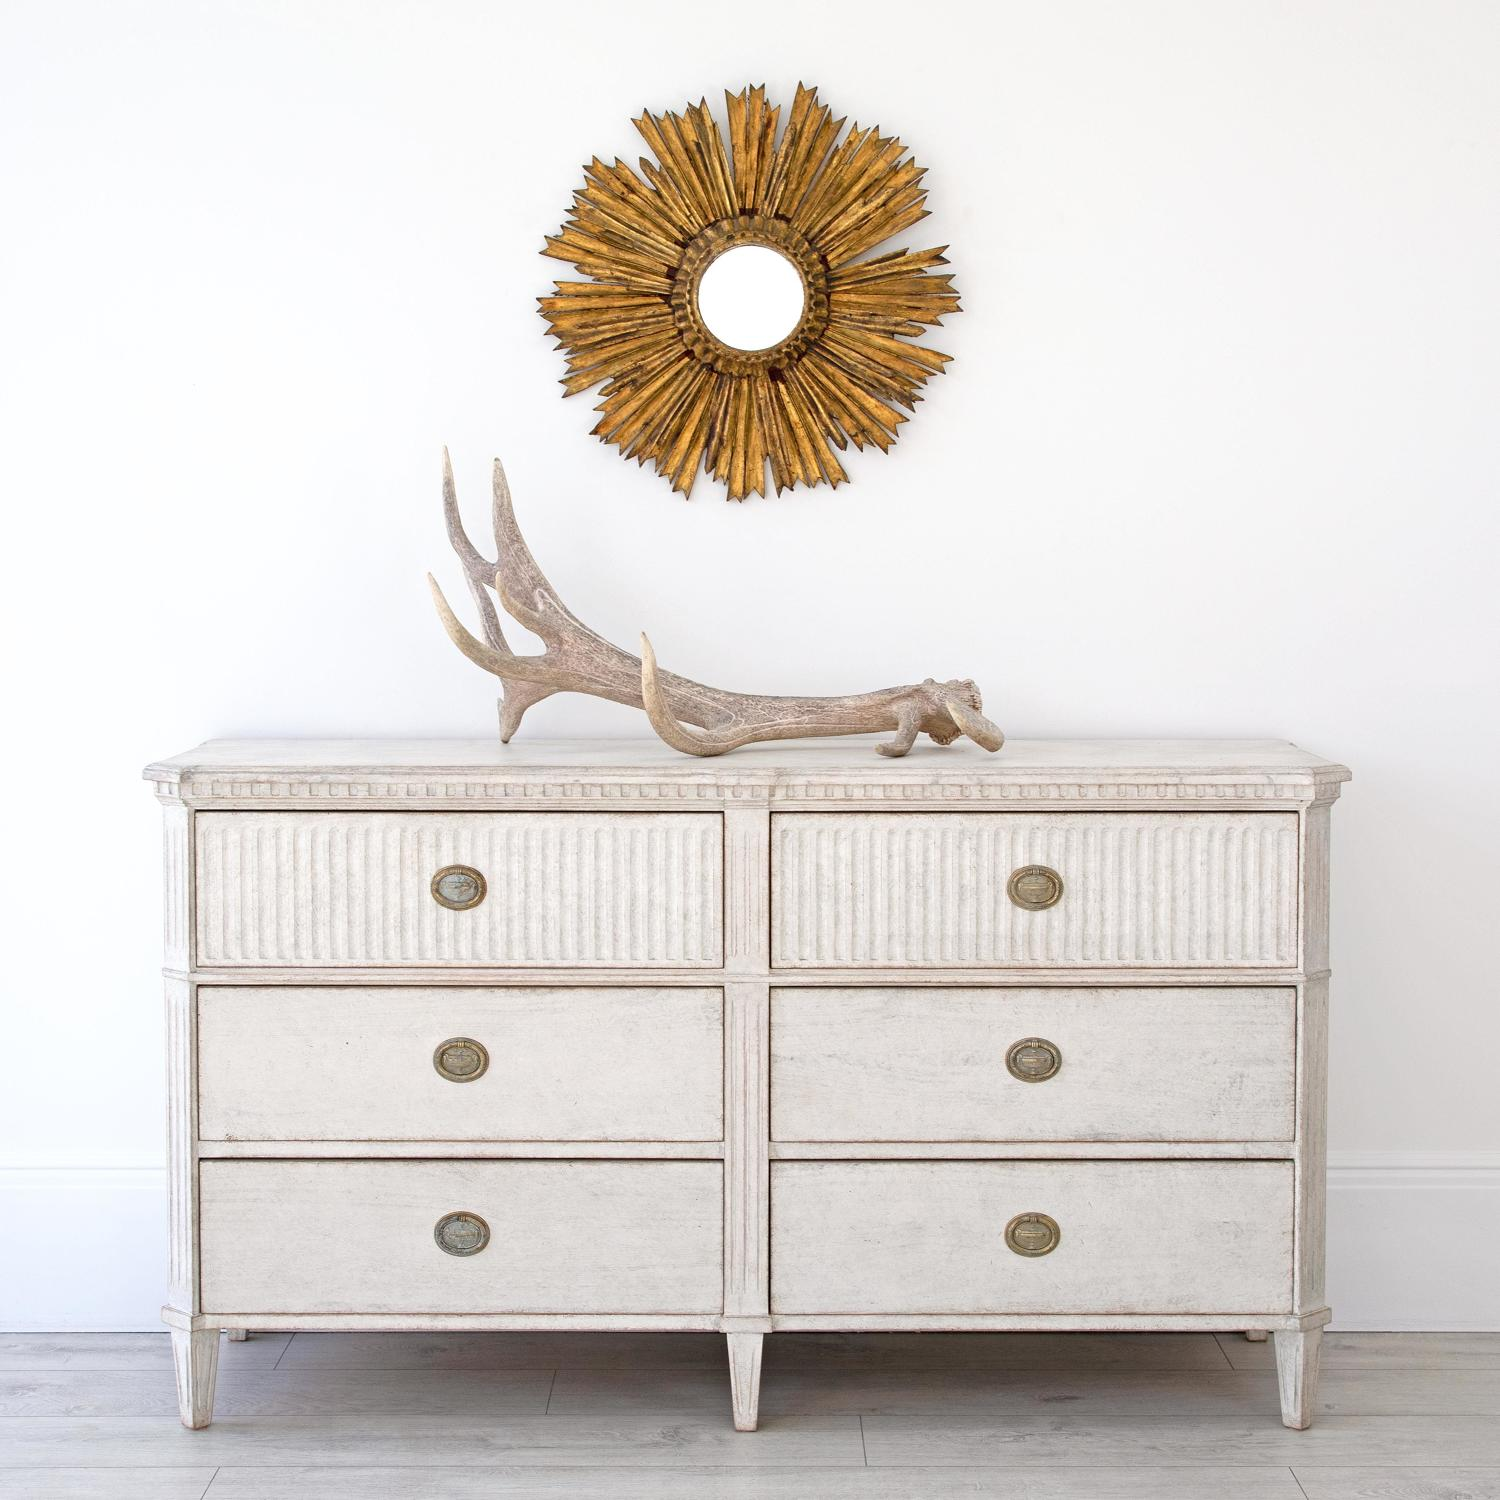 GUSTAVIAN STYLE DOUBLE CHEST